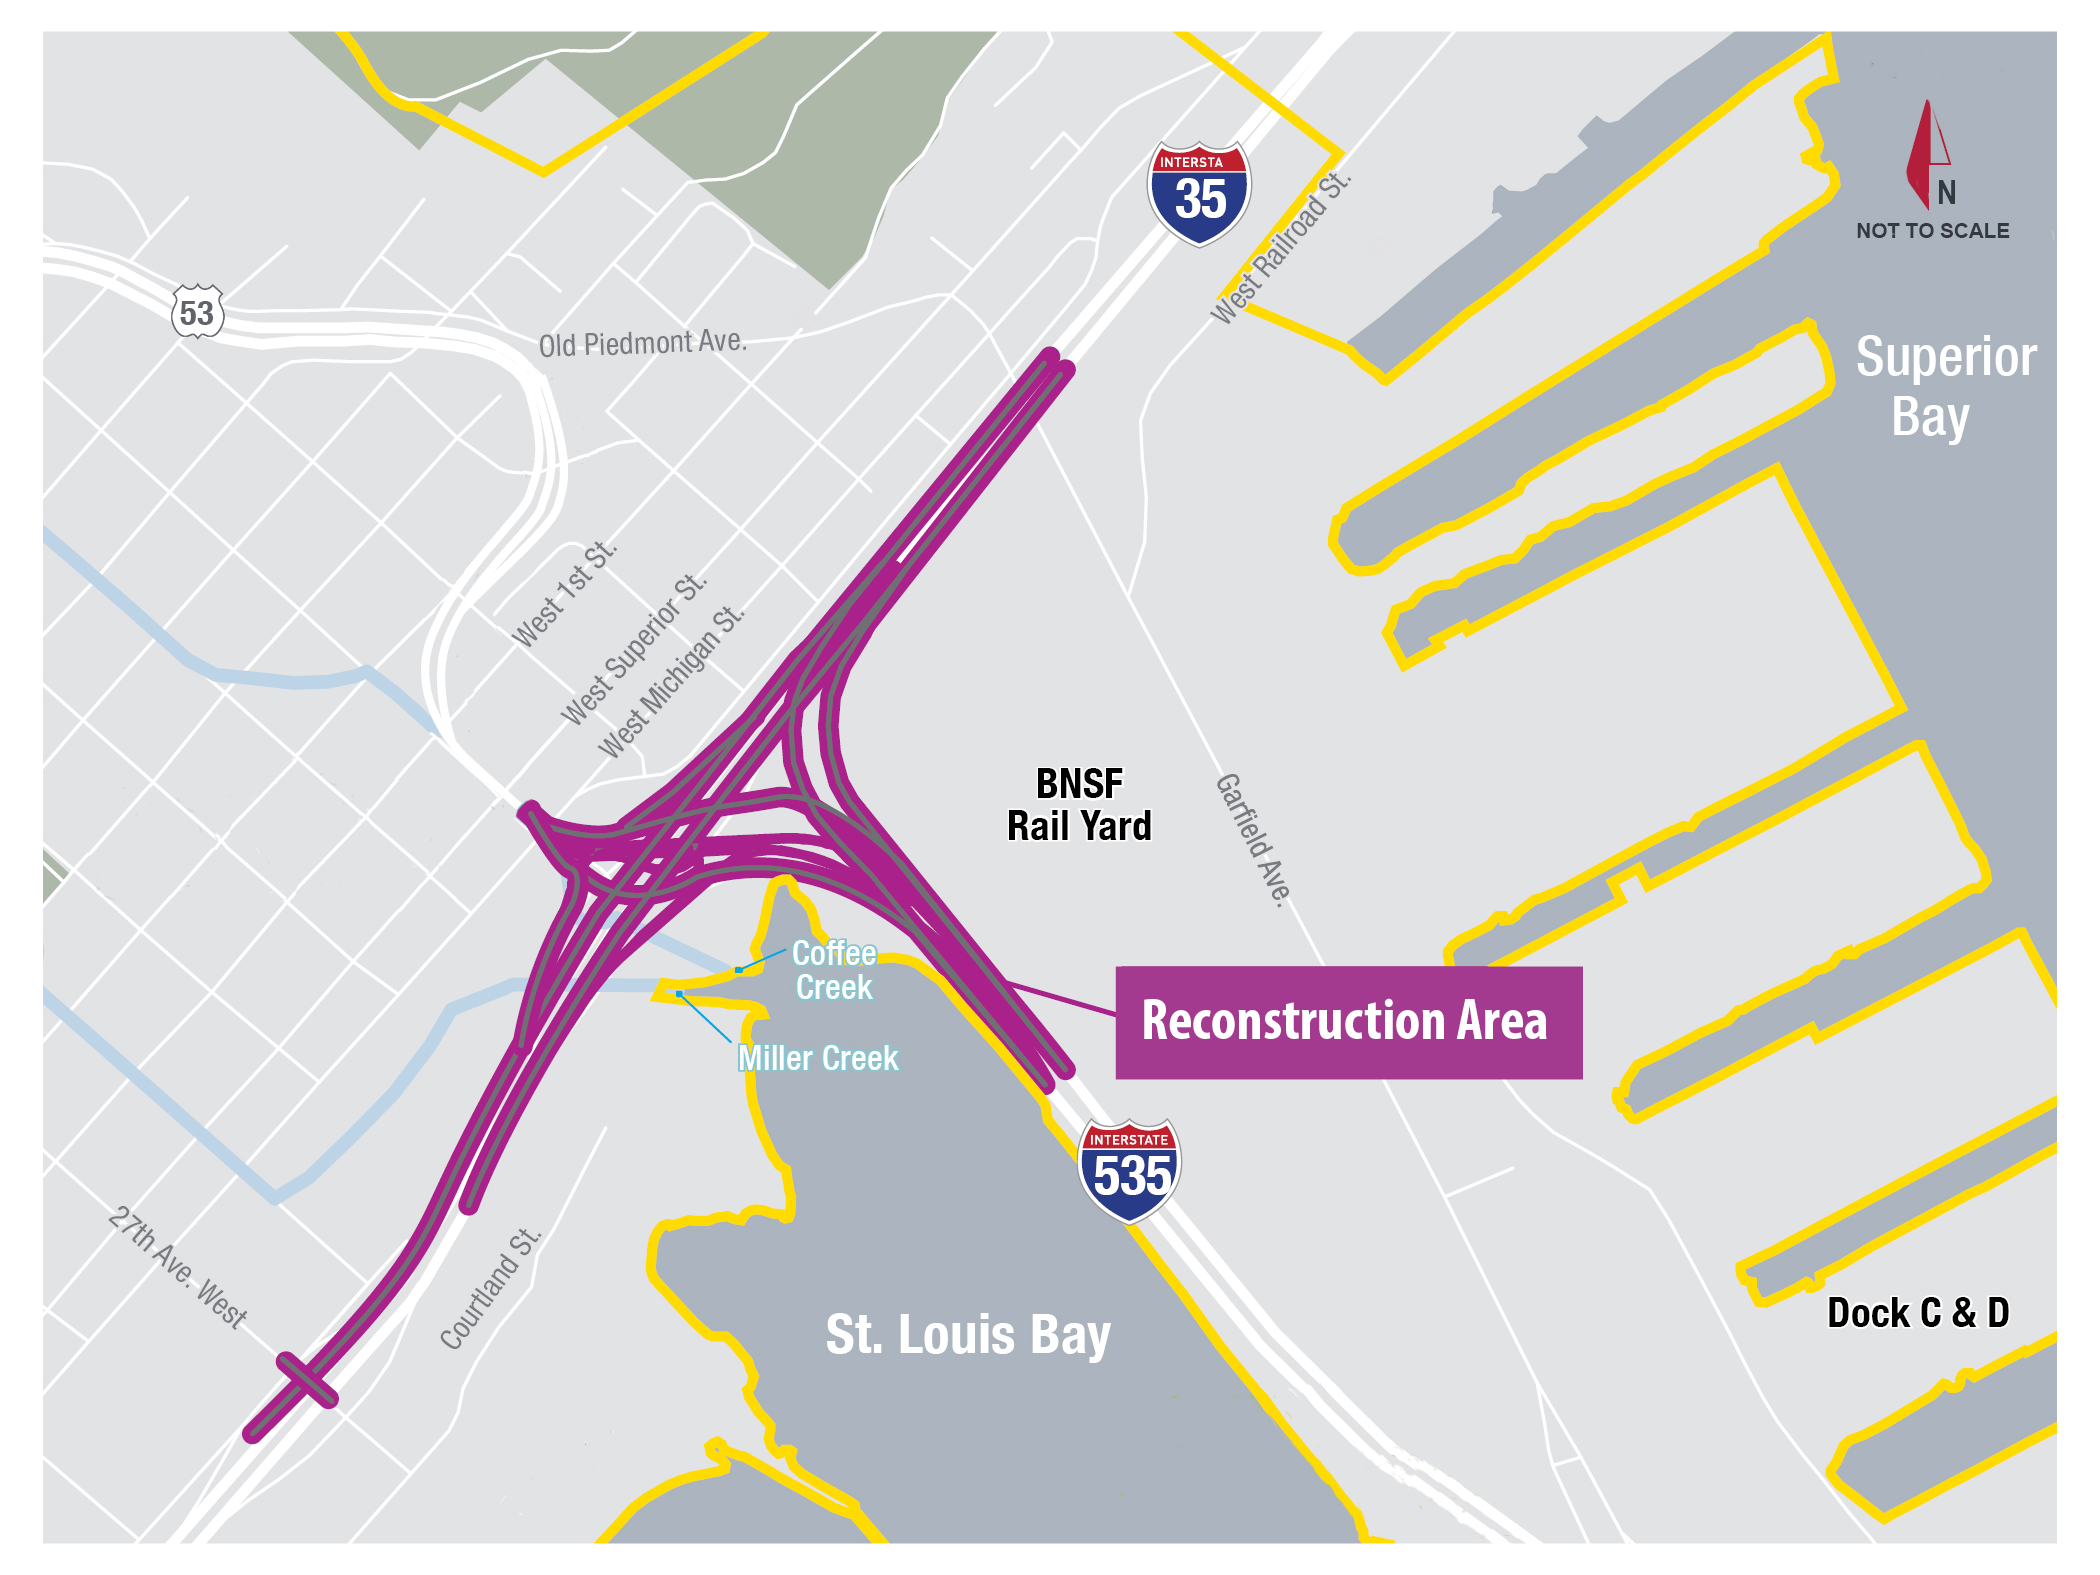 This map shows the location of Twin Ports Interchange improvements in Duluth, which include the reconstruction of the I-35/I-535/Hwy 53 interchange.